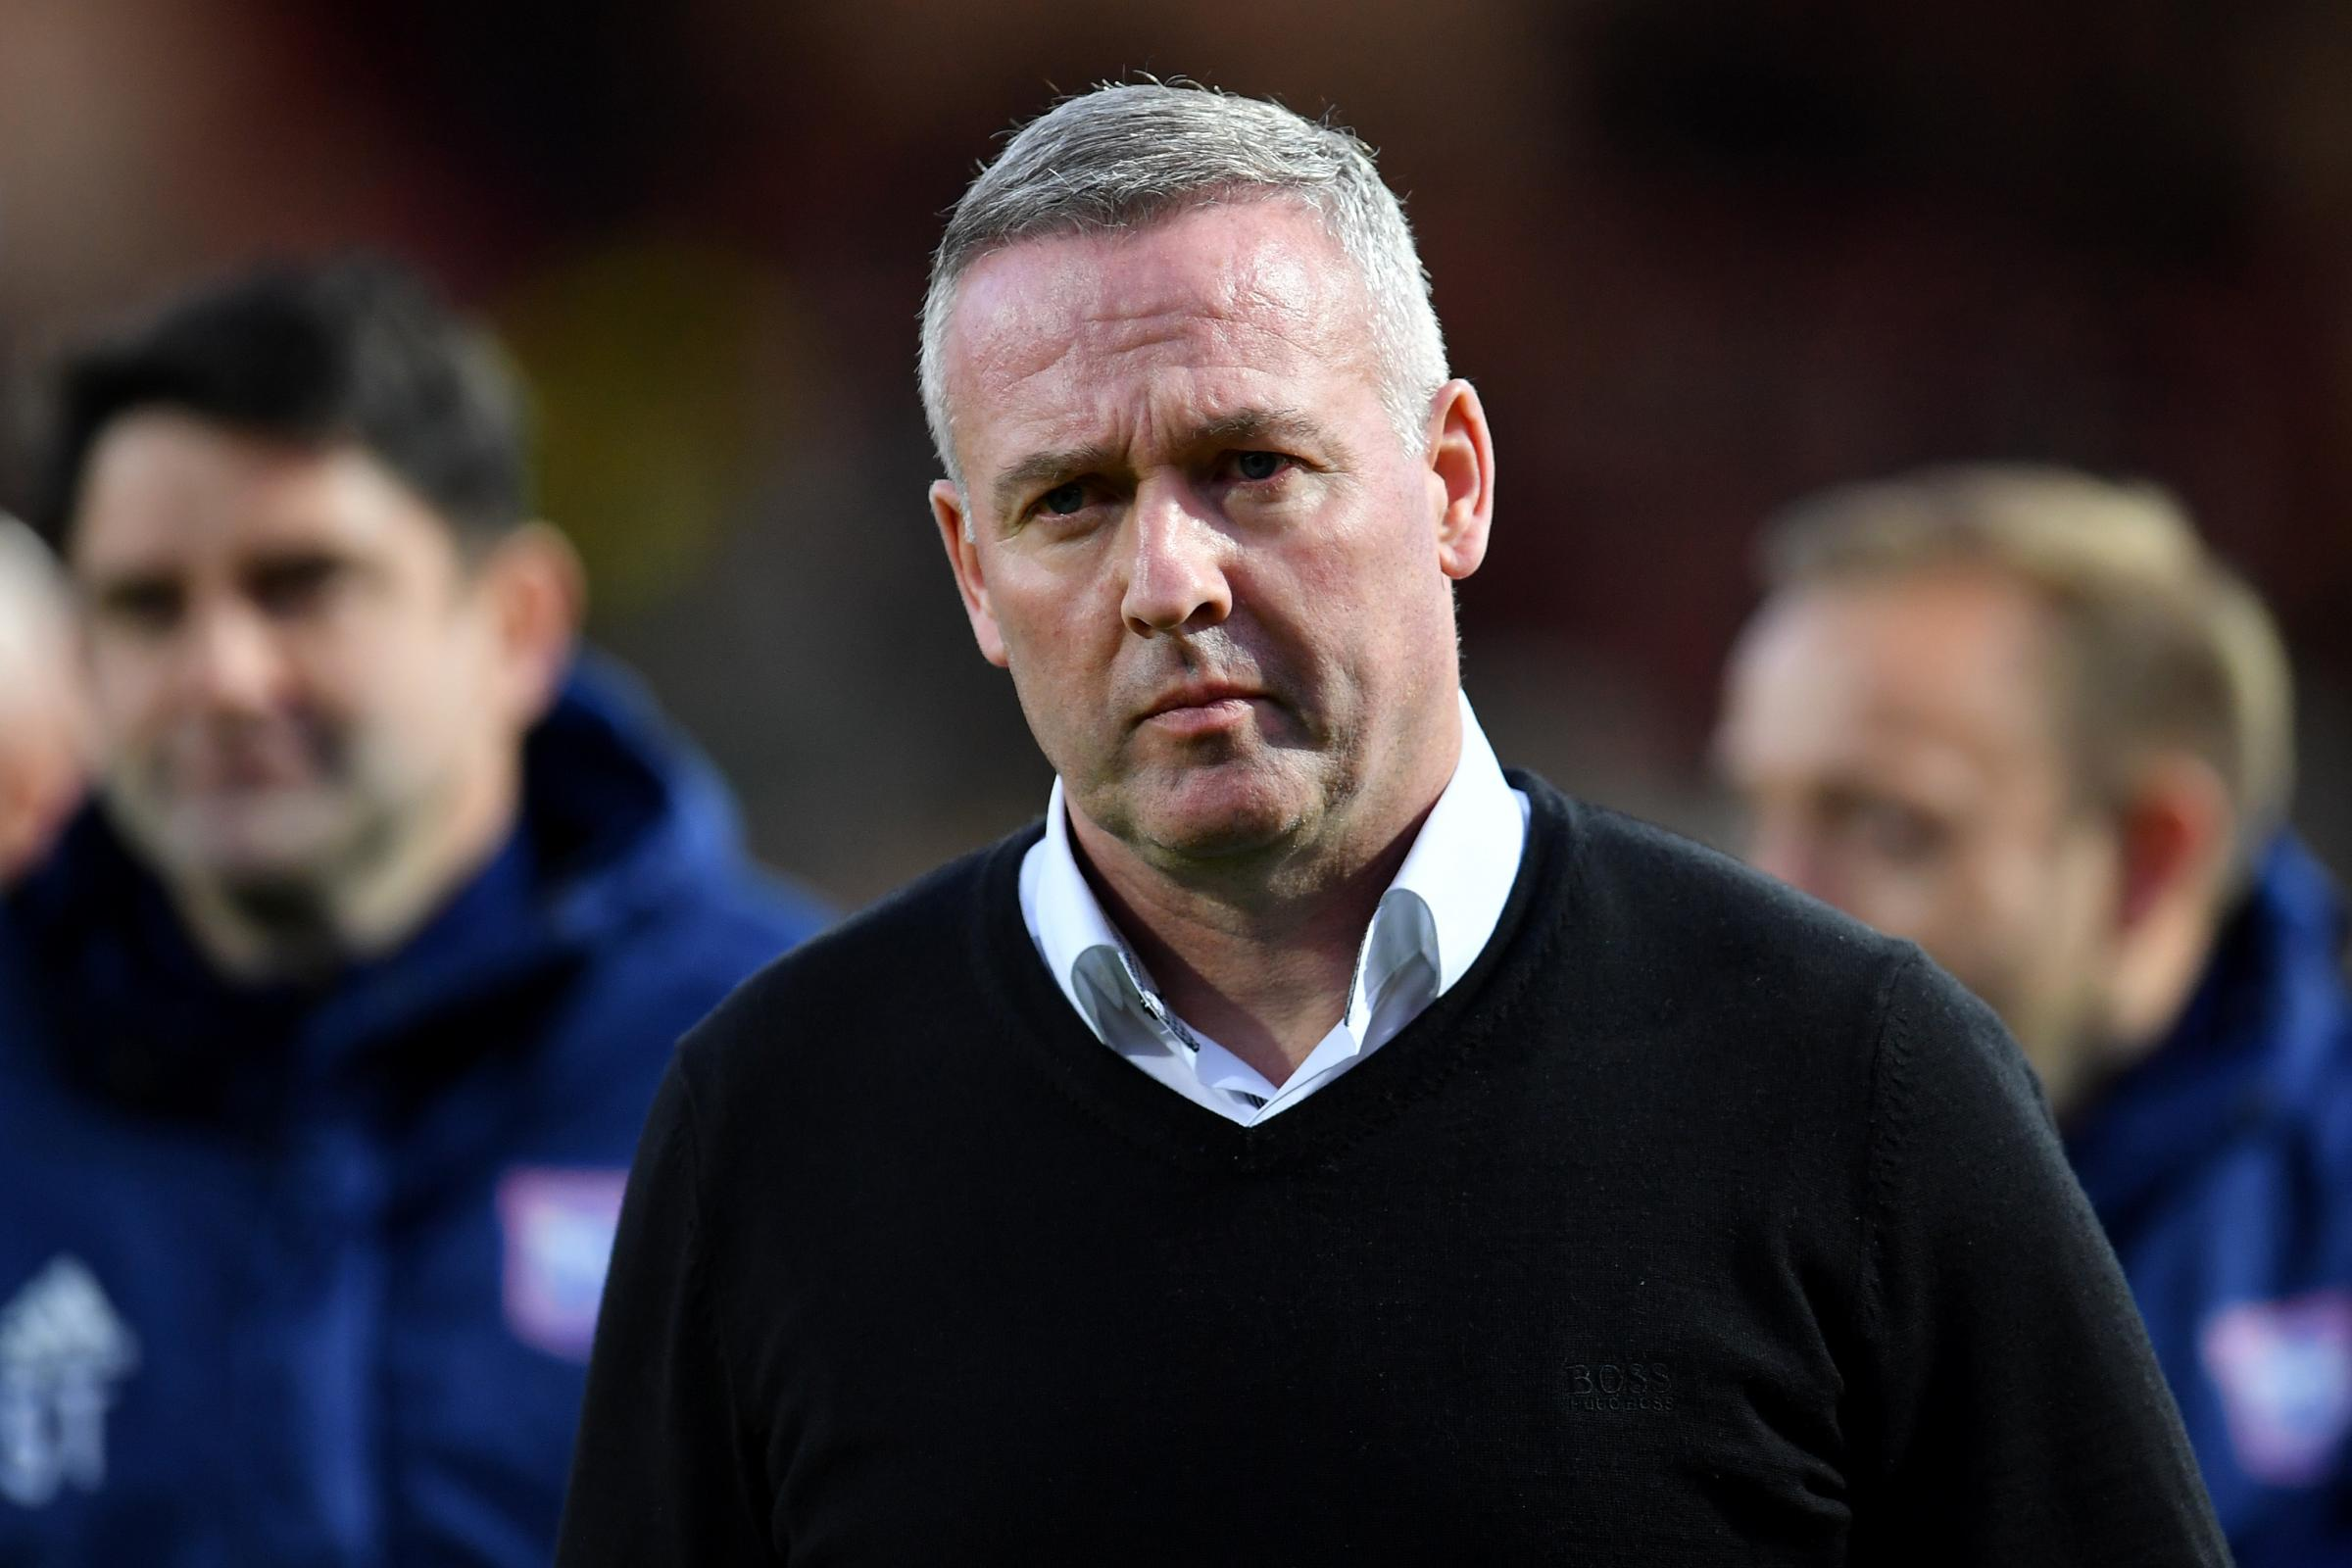 Ipswich Town manager Paul Lambert has been given a vote of confidence despite the club's relegation to League 1